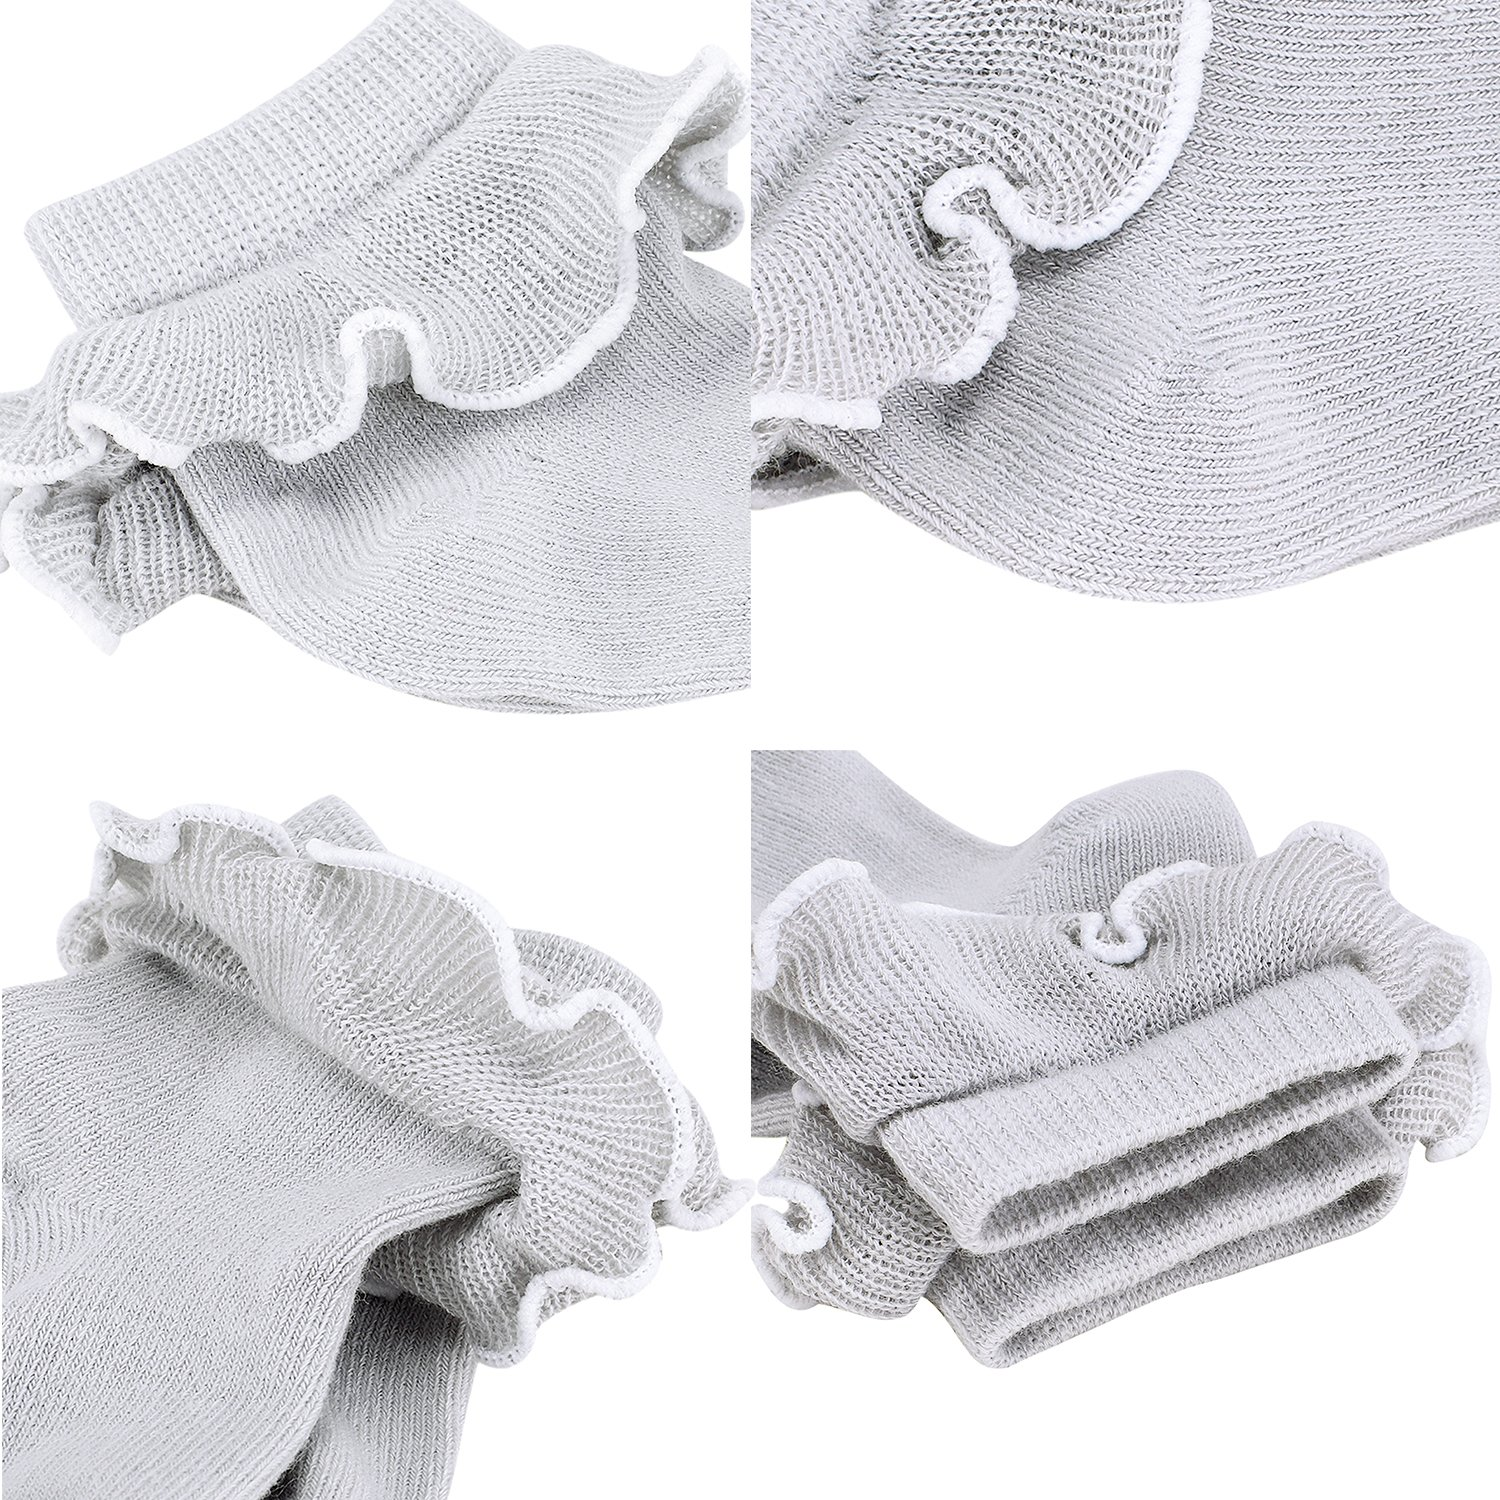 Reeple Baby-Girls Cotton Frilly Lace Ruffles Socks Newborn/Infant/Toddler 4 Pack